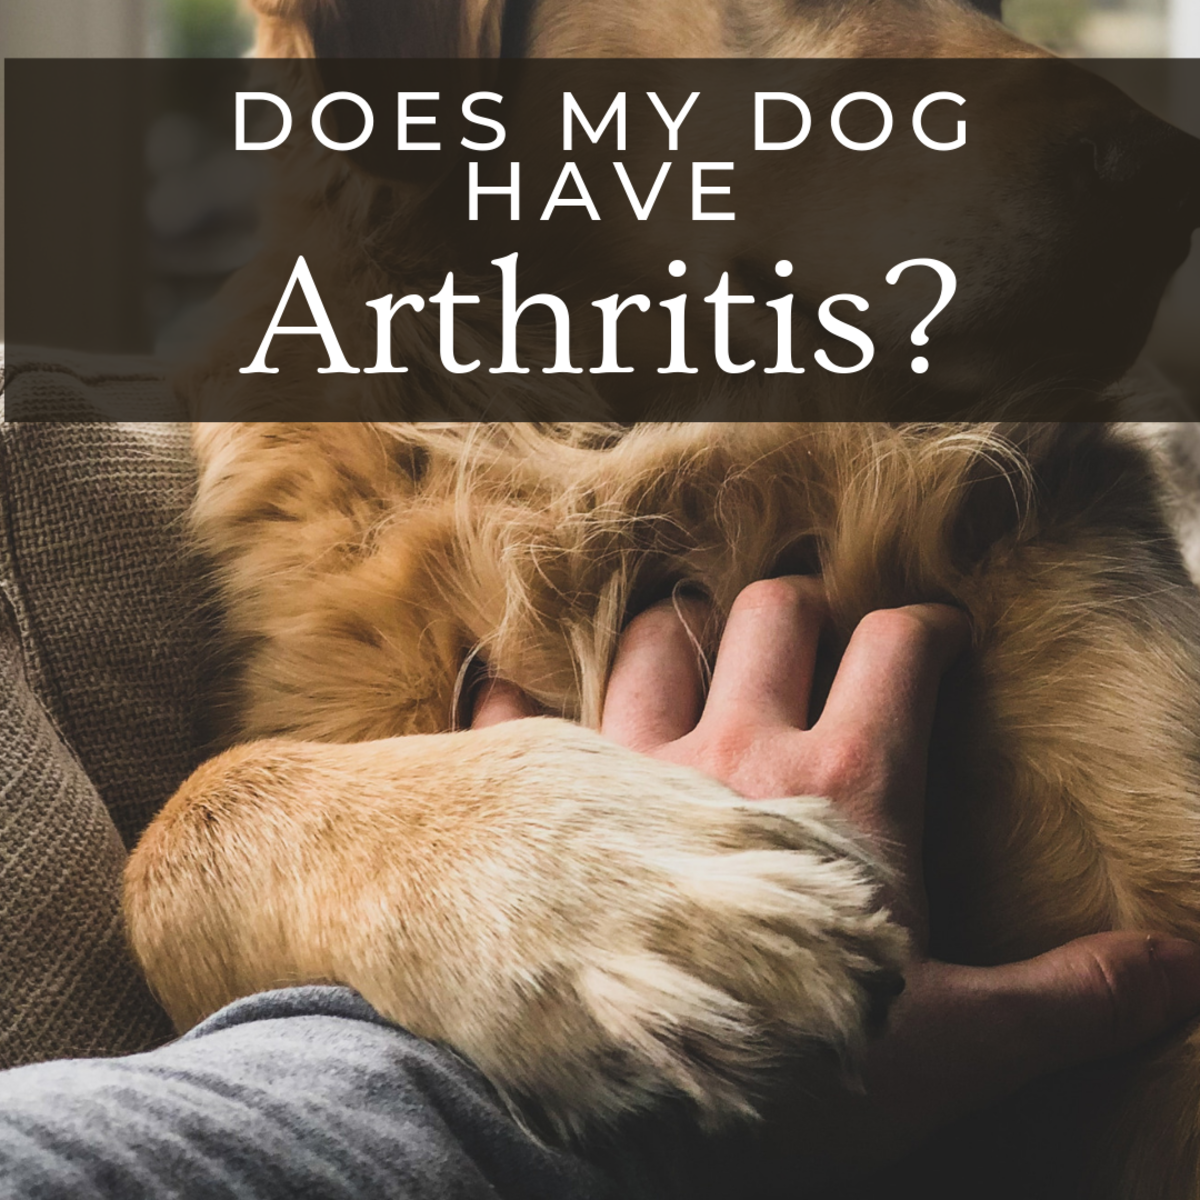 Does My Dog Have Arthritis?